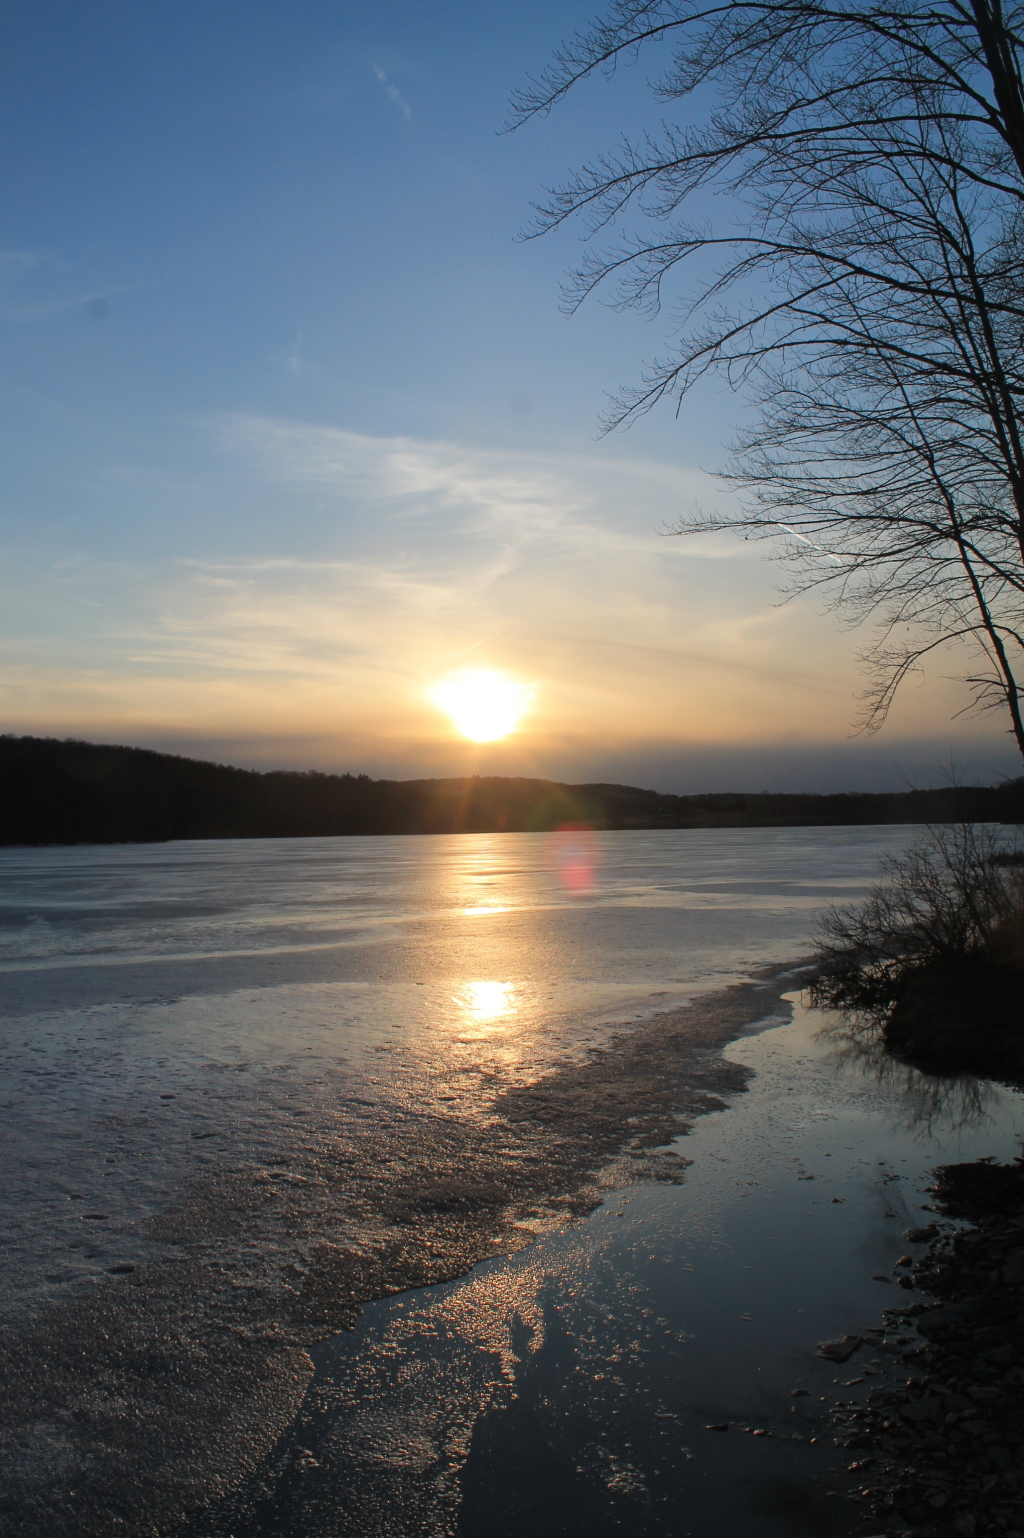 Photo: Setting Sun Over Frozen Lake